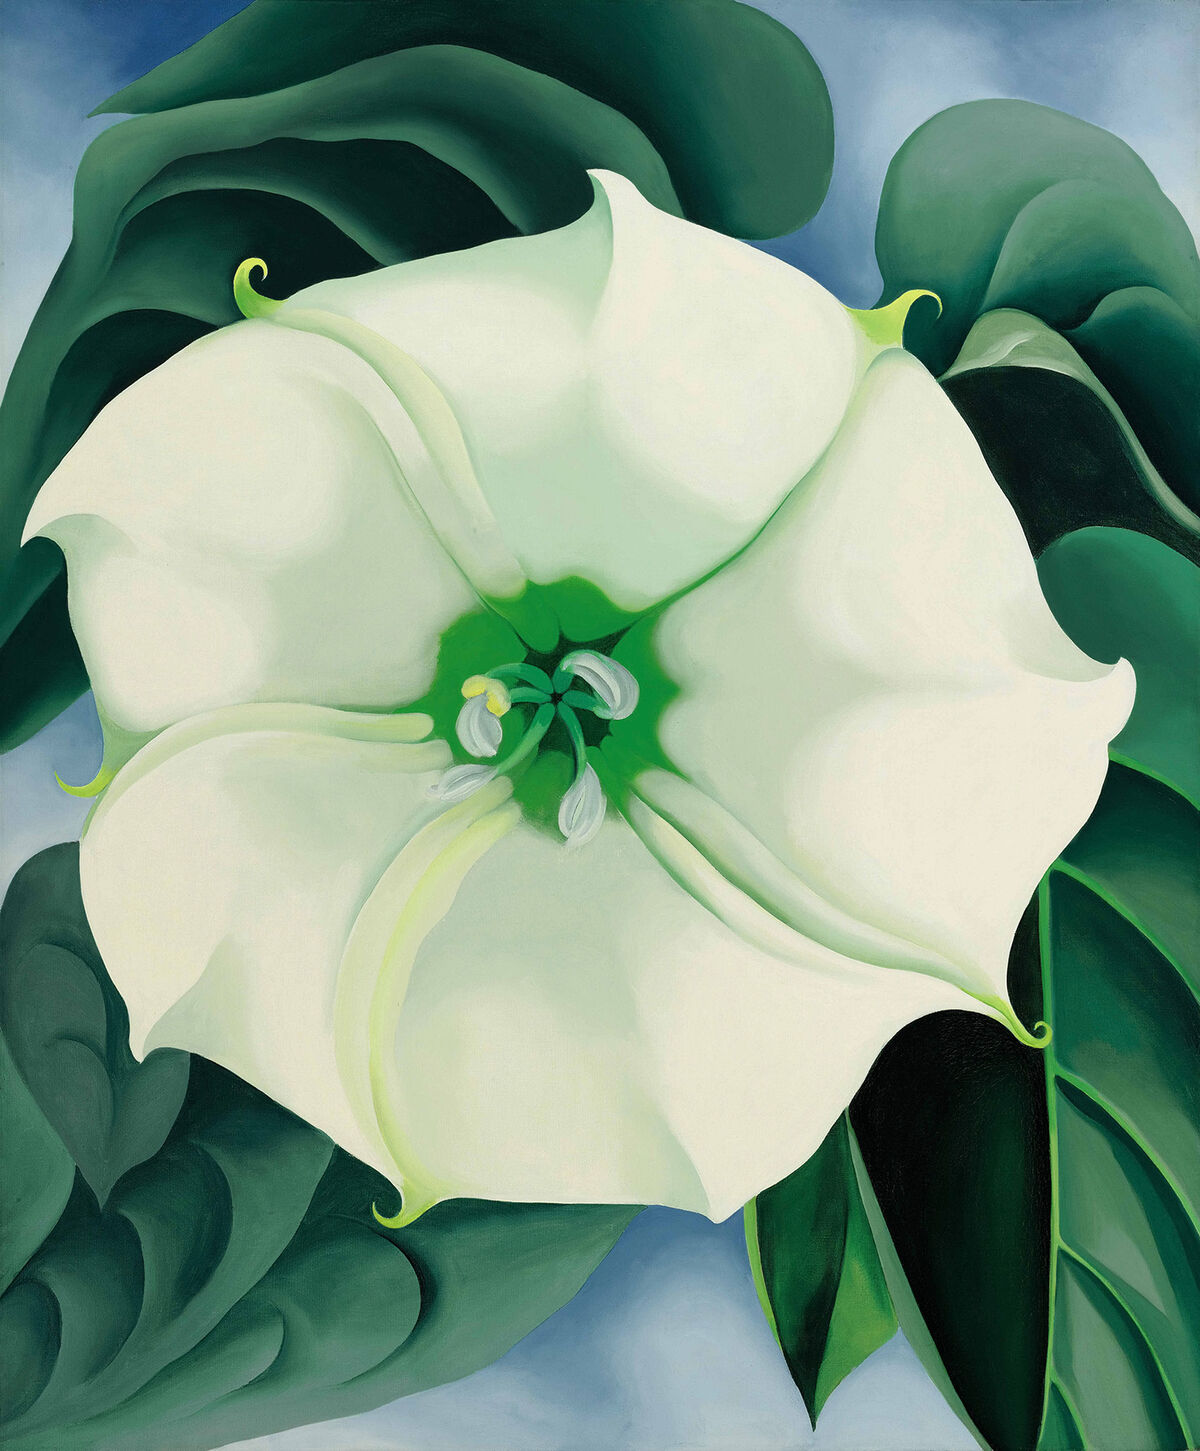 Georgia O'Keeffe, Jimson Weed/ White Flower No. 1, 1932. Photo by Edward C. Robison III. Courtesy of Crystal Bridges Museum of American Art, Bentonville, Arkansas.